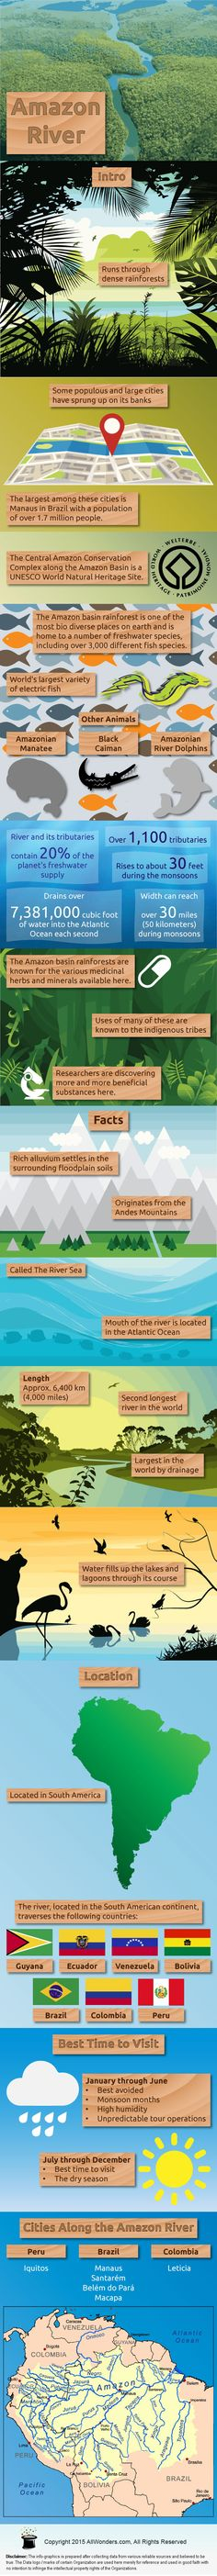 Amazon River Infographic